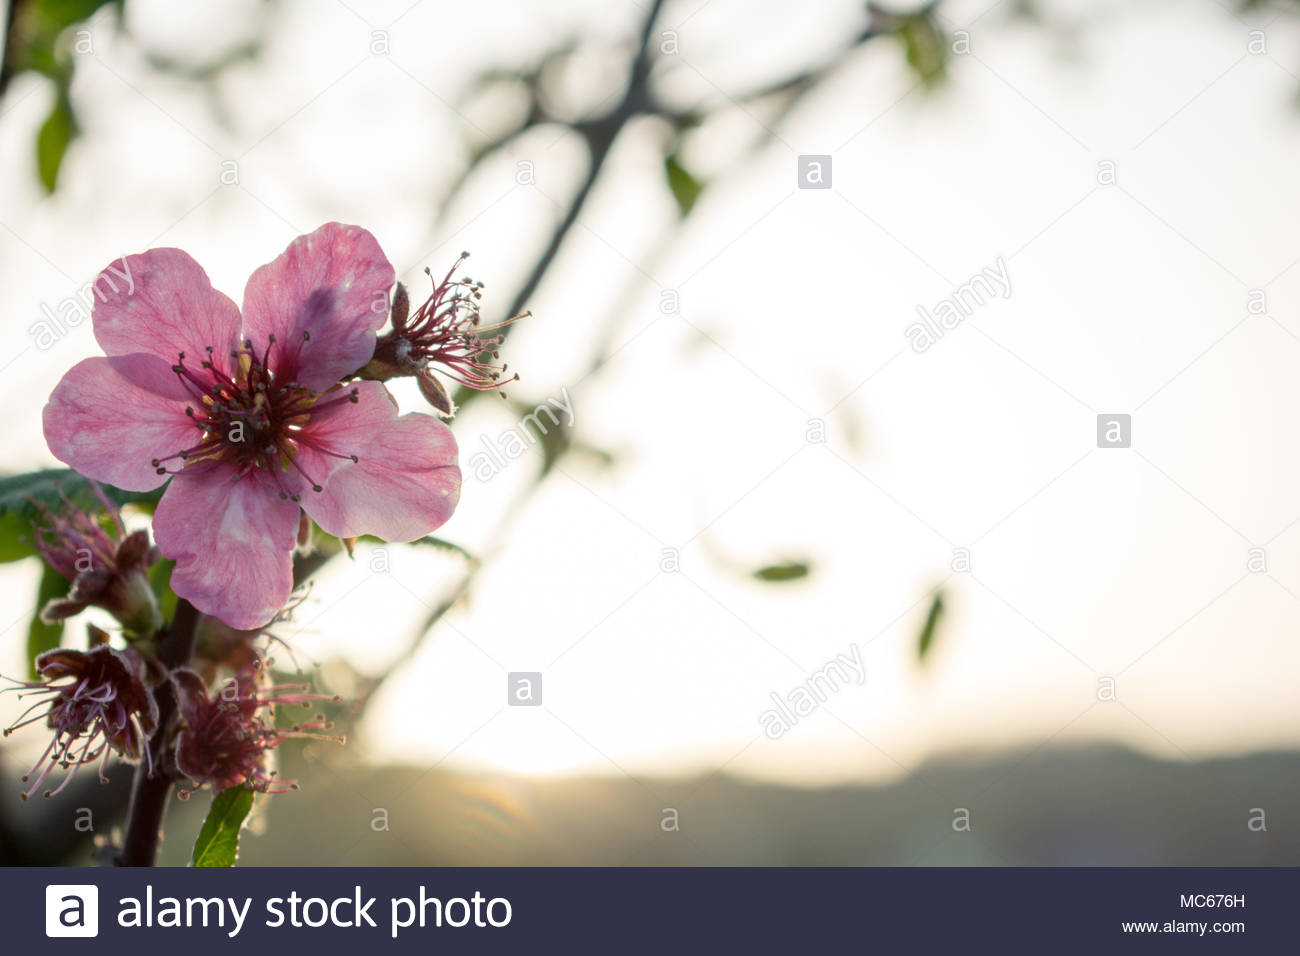 soft pink flower background - Stock Image